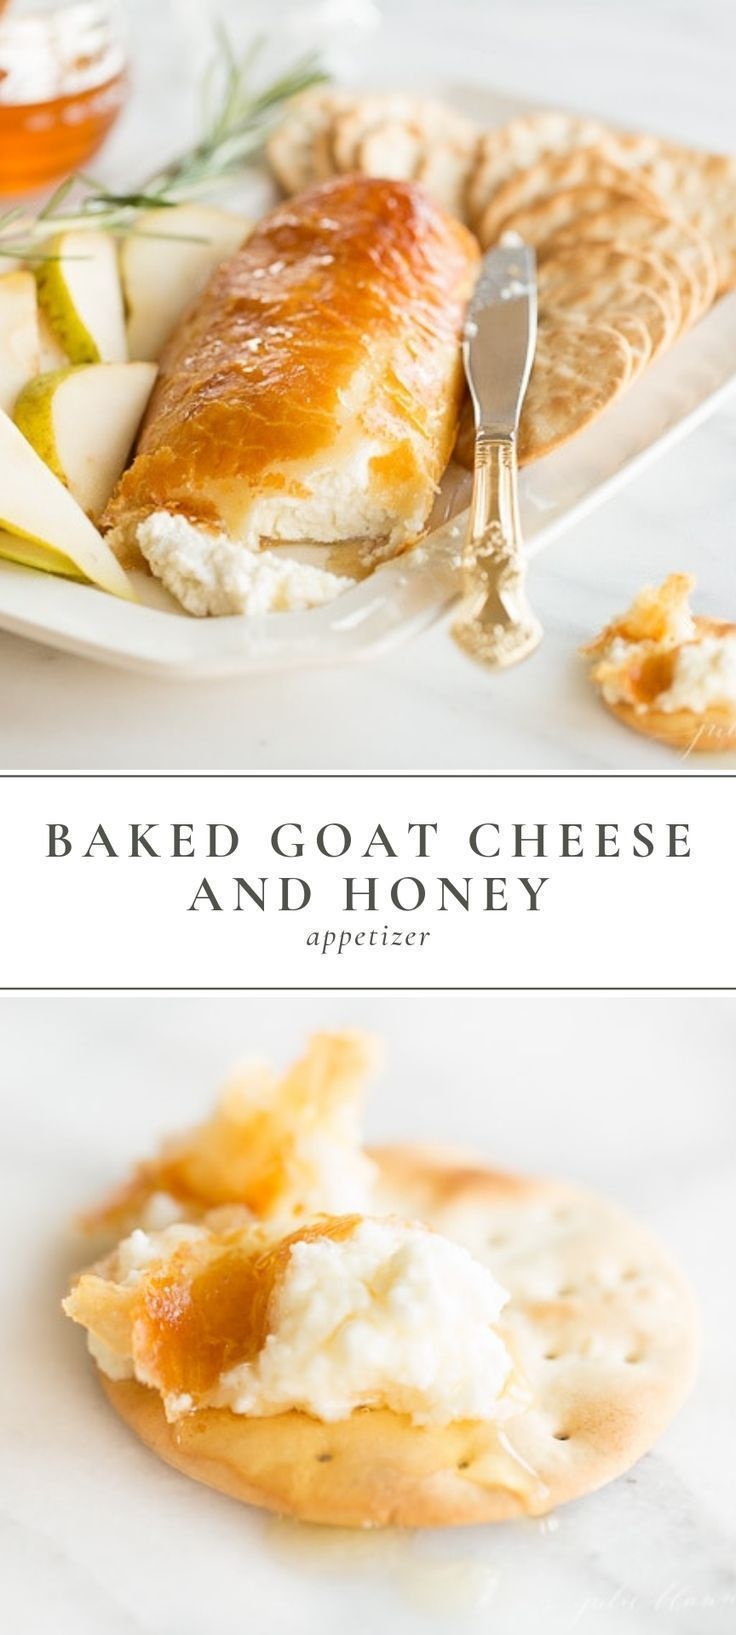 Easy crowd pleasing baked goat cheese and honey appetizer recipe that looks as good as it tastes. I